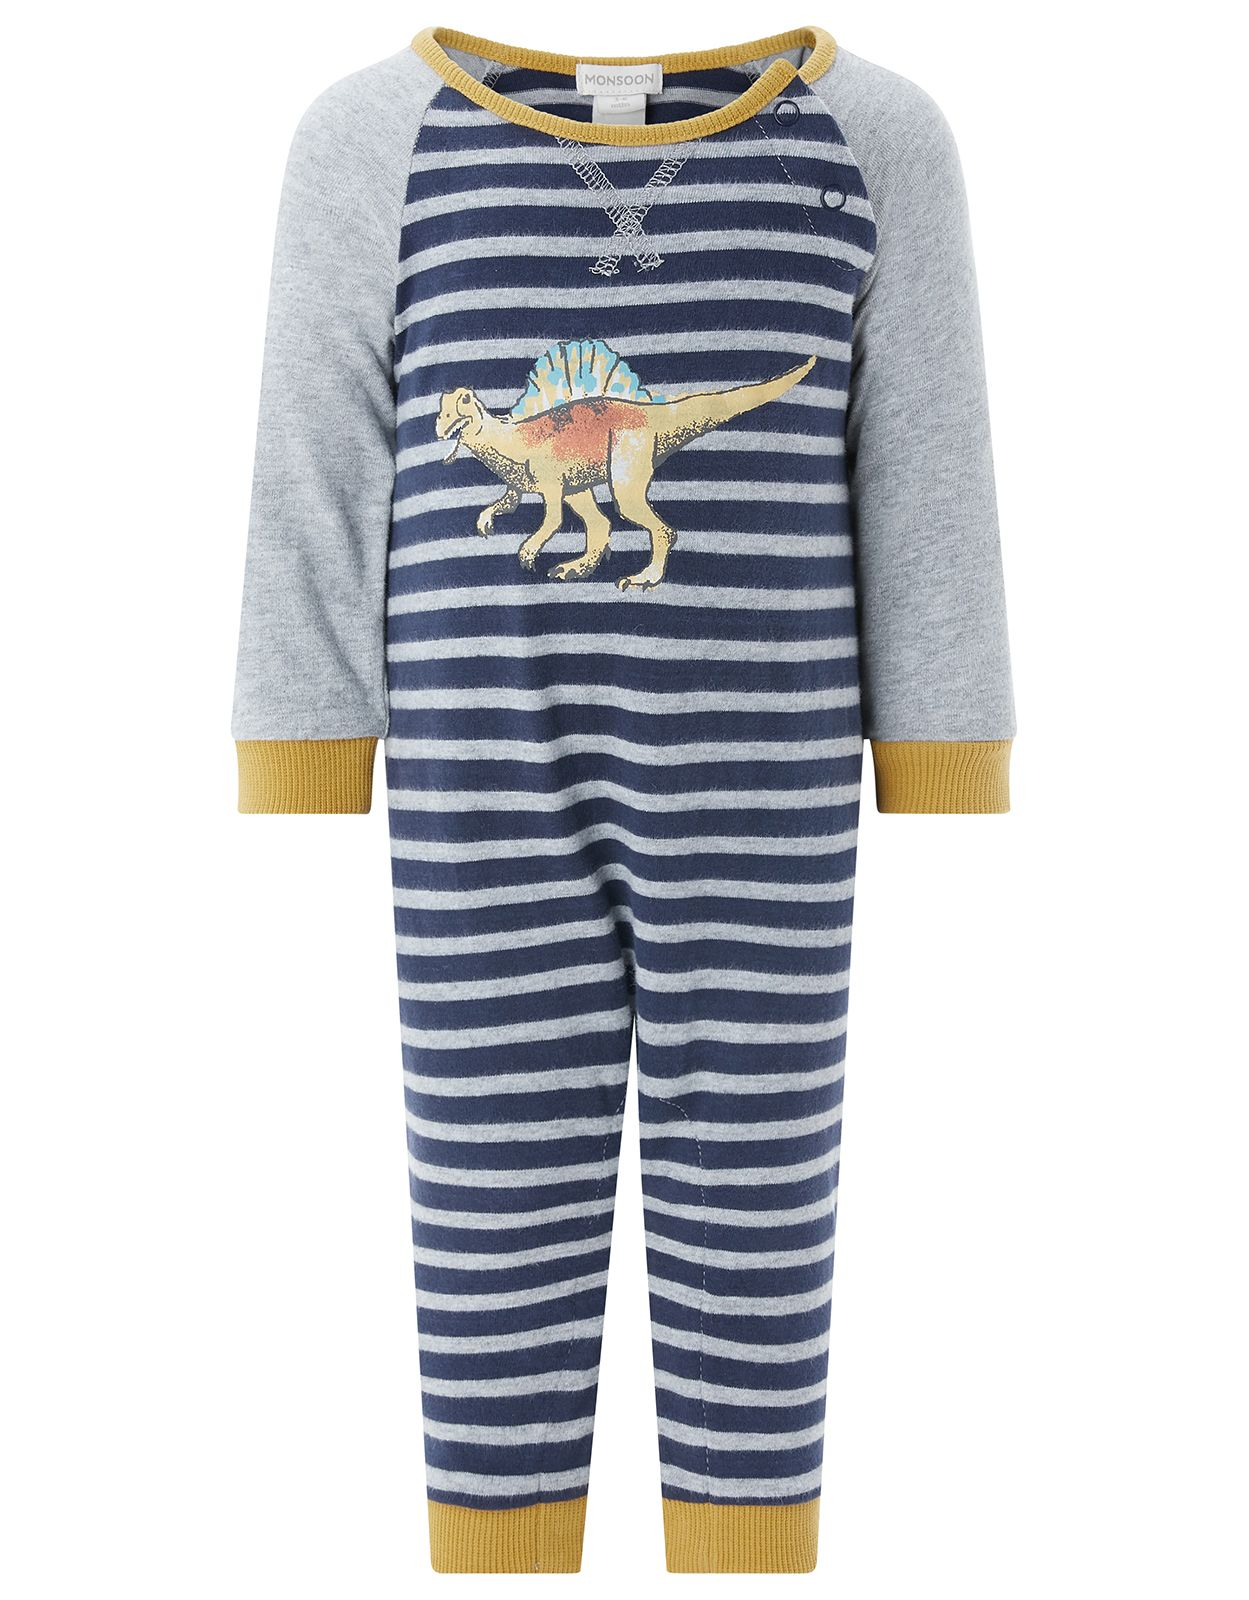 GRAPHIC DINOSAUR SLEEPSUIT See more at